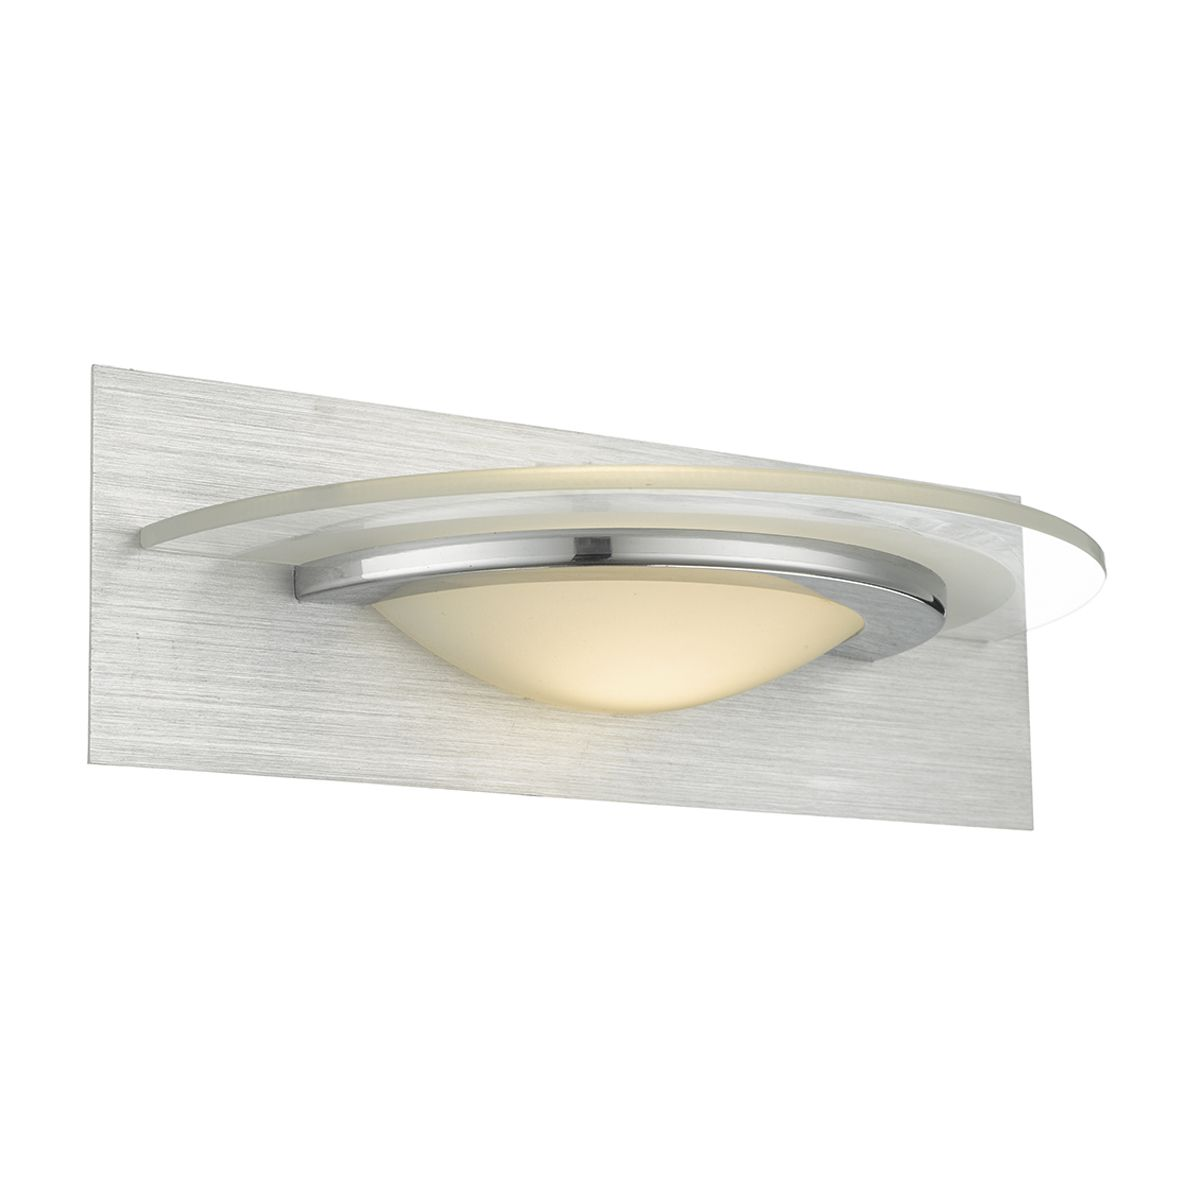 Double Insulated Class 2 Wall Lights : ANALYZE Wall Light BRUSHED ALU CHROME LED Class 2 Double Insulated BXANA0768-17